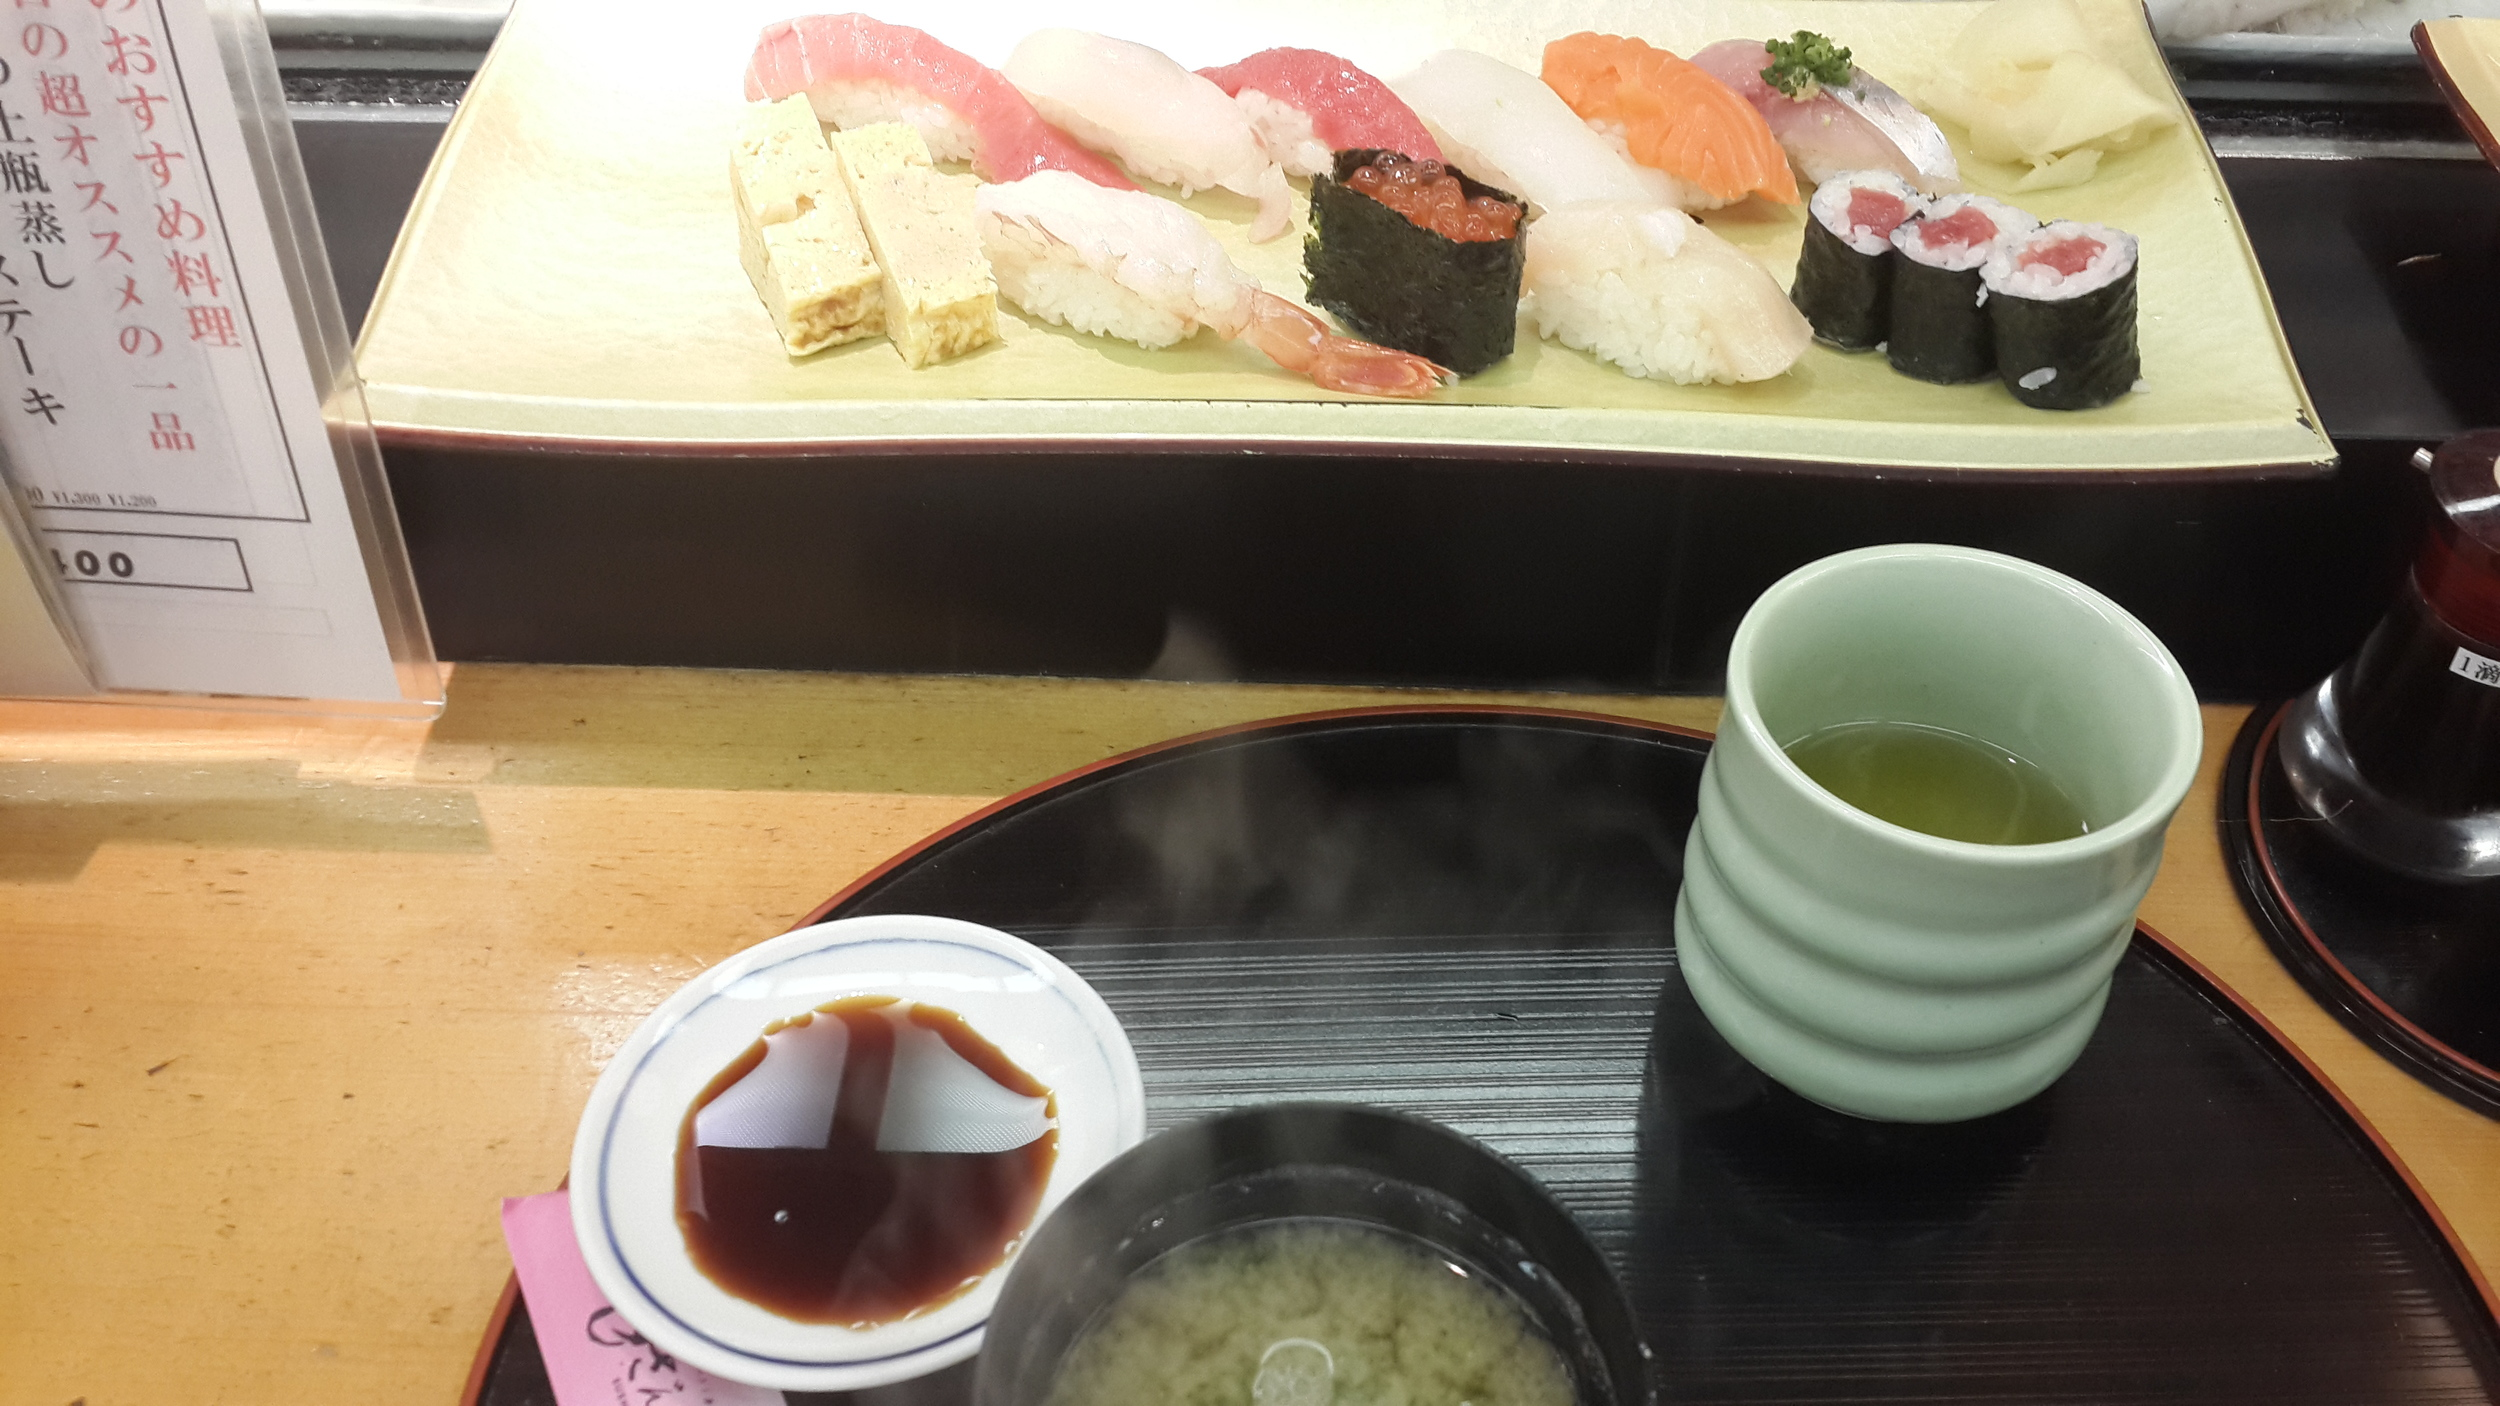 Sushi Lunch at the market